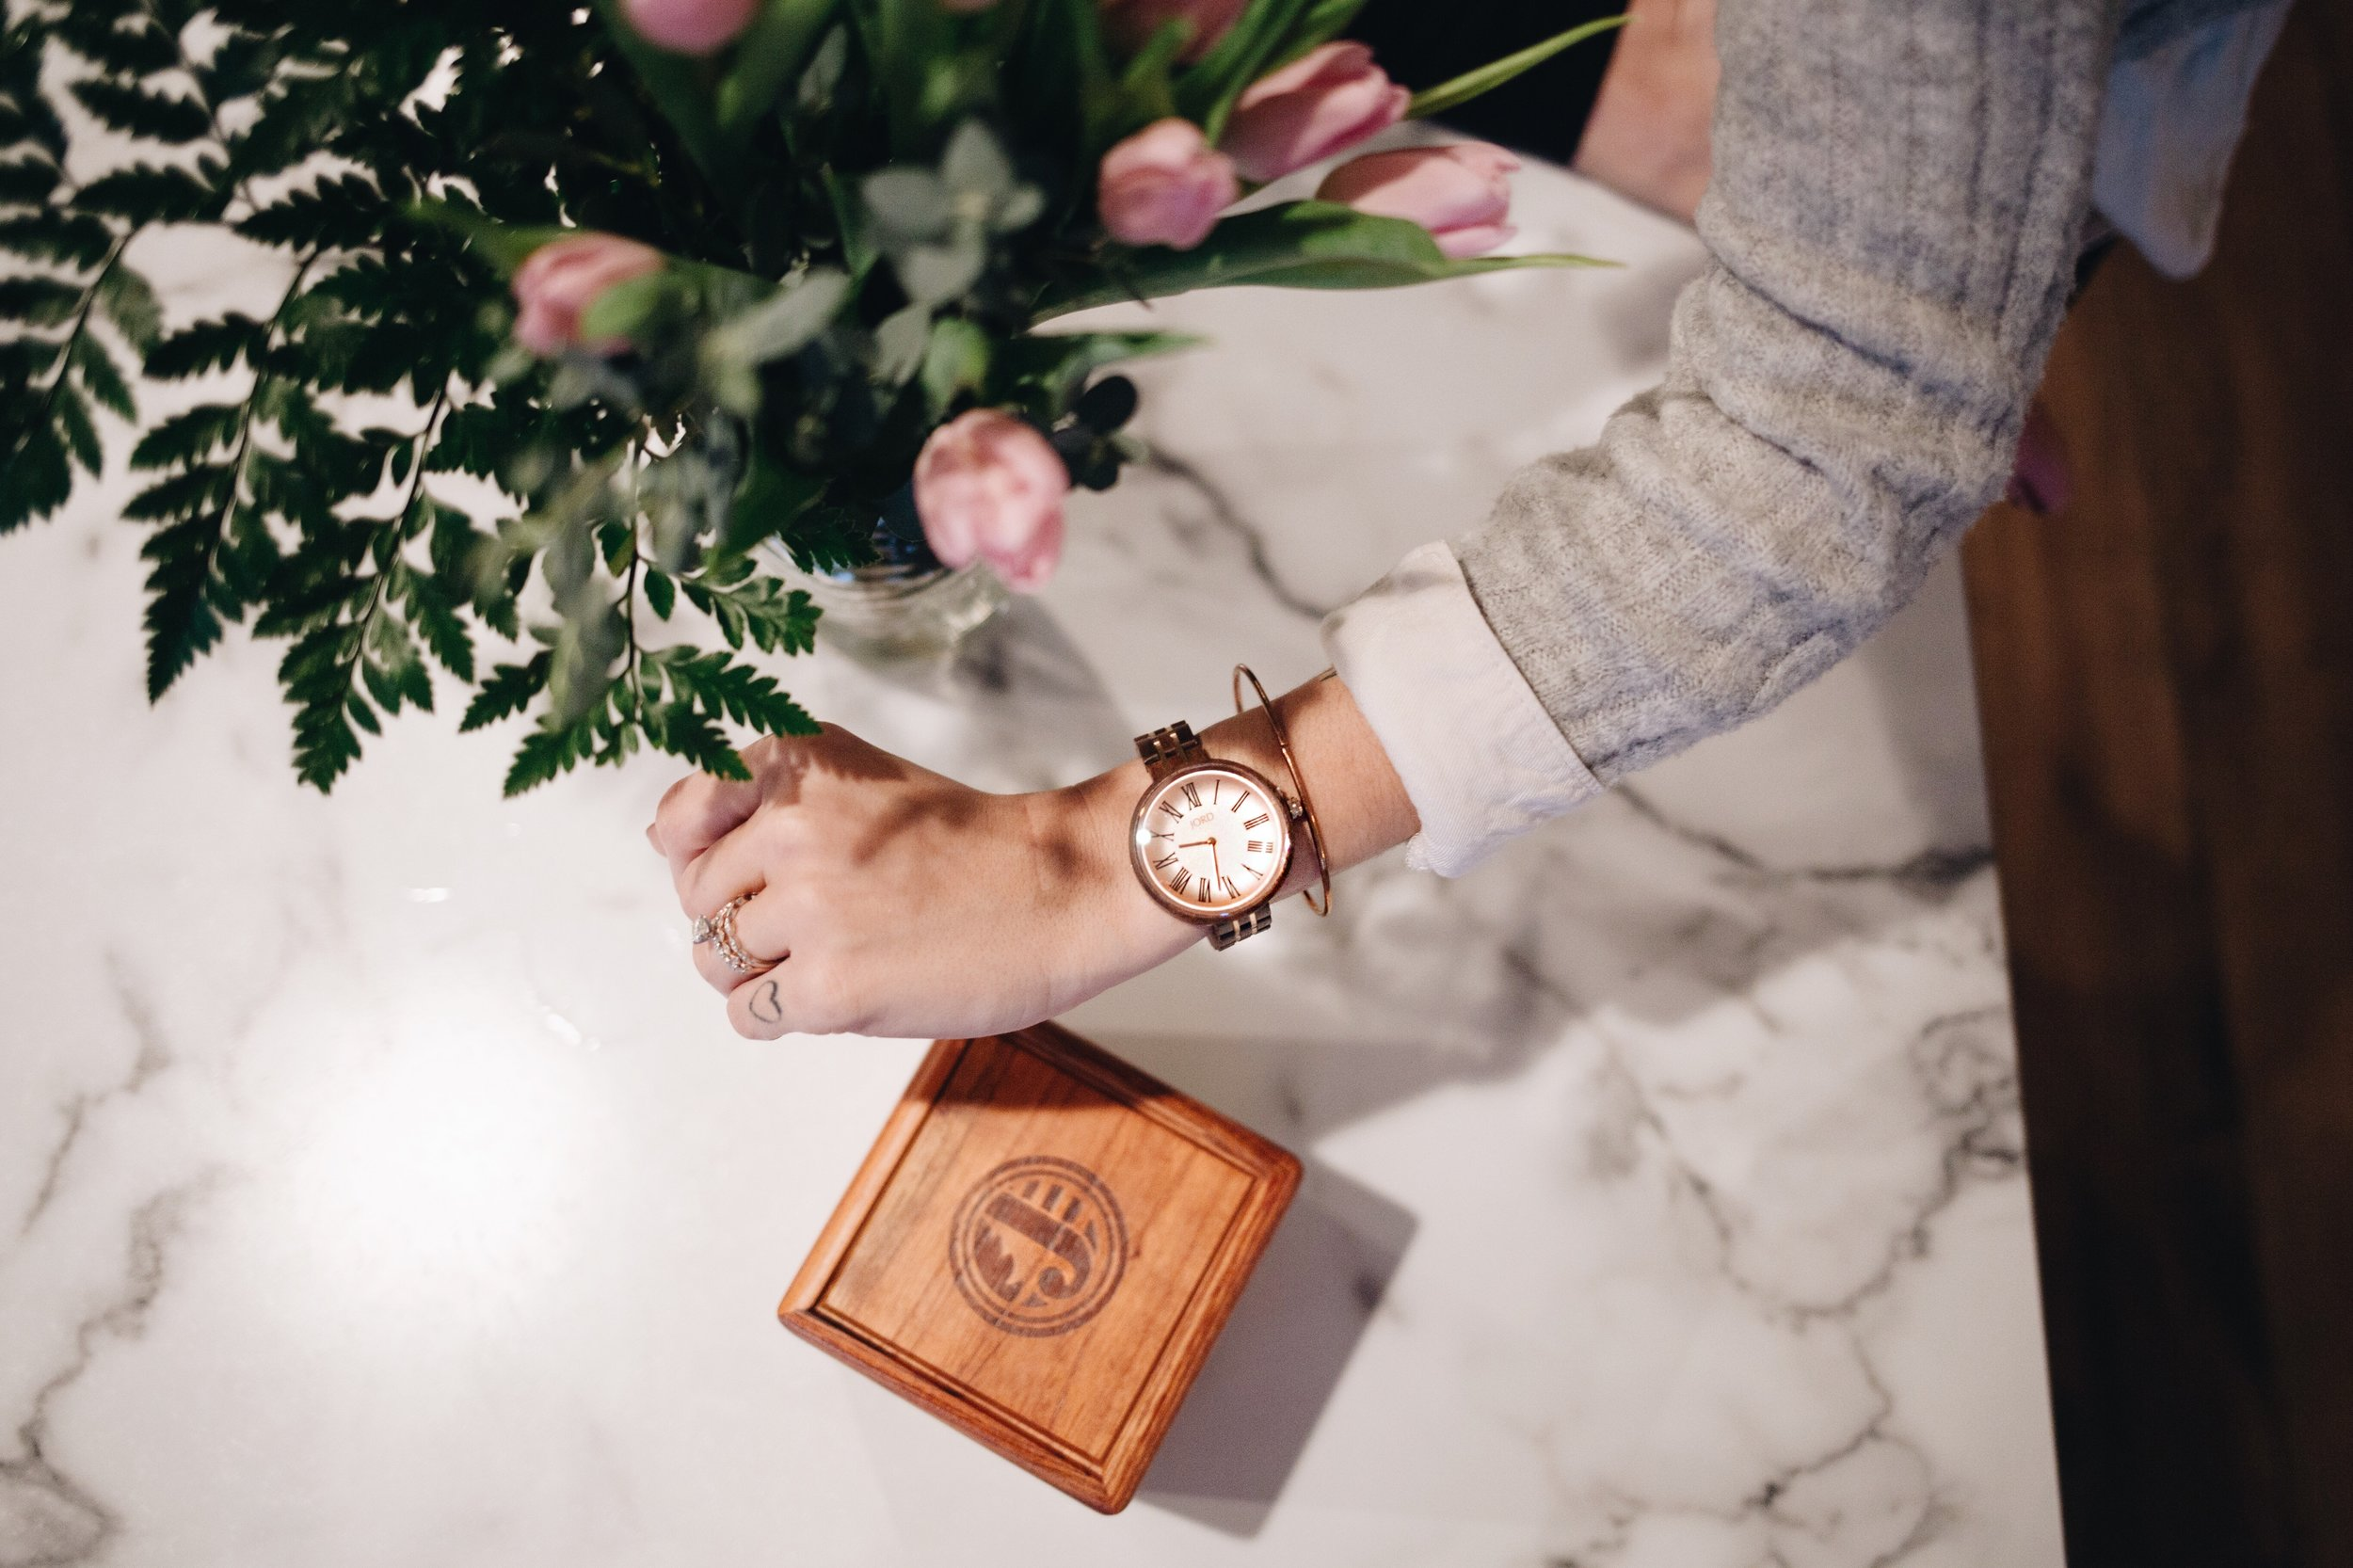 The wooden box it came in was stunning. Click the photo to shop JORD.